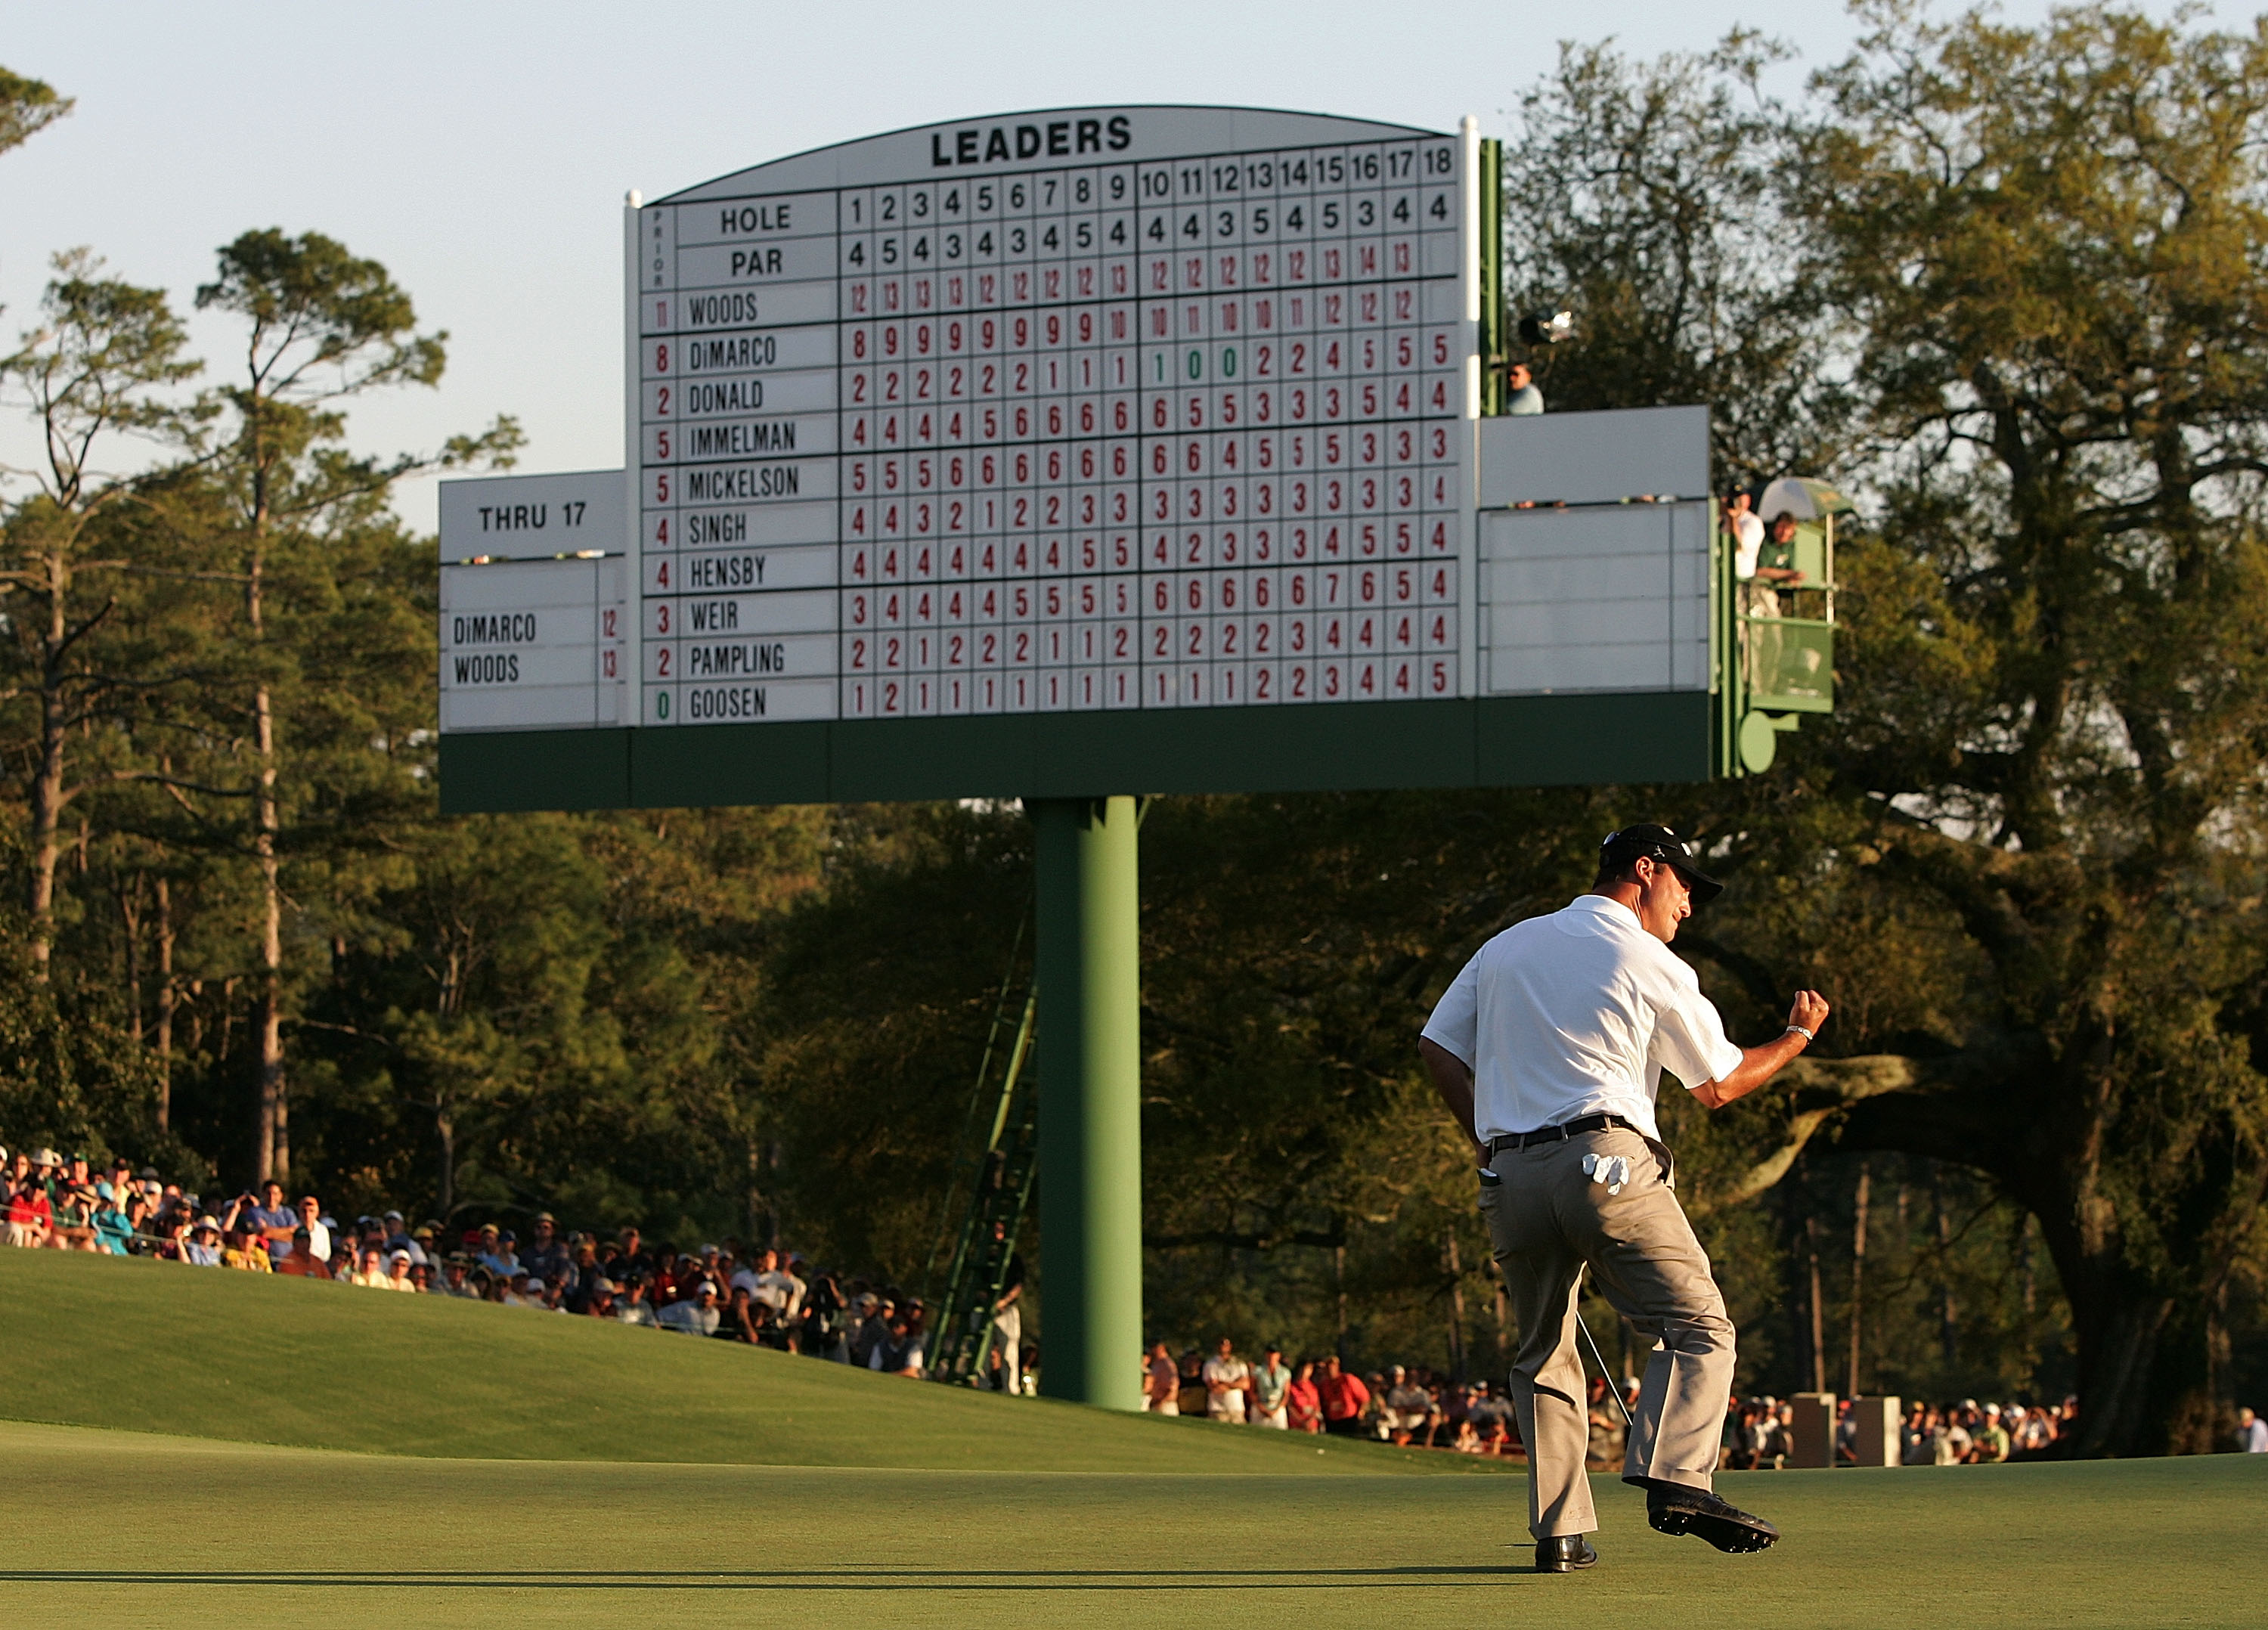 AUGUSTA, GA - APRIL 10:  Chris DiMarco celebrates his par-saving putt on the 18th green during the final round of The Masters at the Augusta National Golf Club on April 10, 2005 in Augusta, Georgia.  (Photo by Andrew Redington/Getty Images)